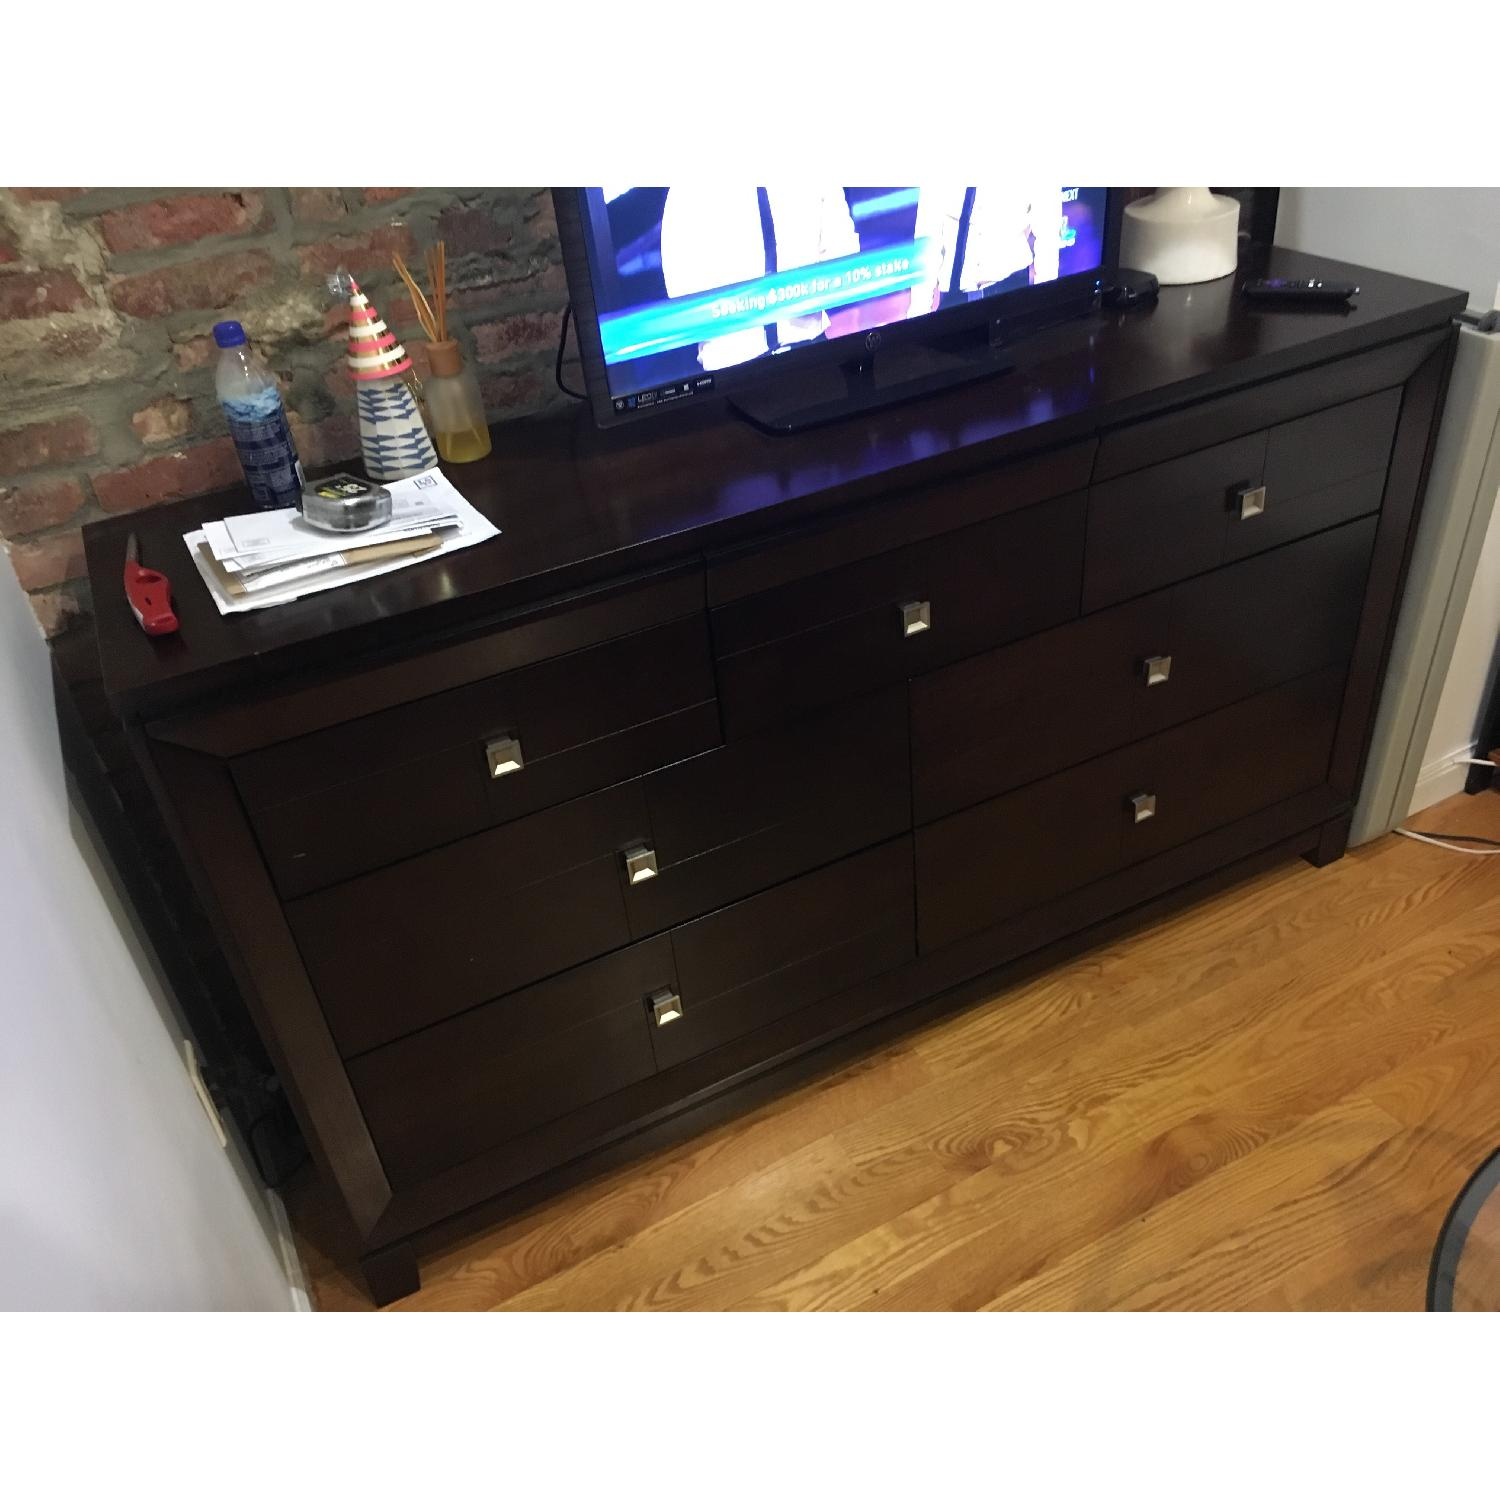 West Elm 7 Drawer Dresser-1